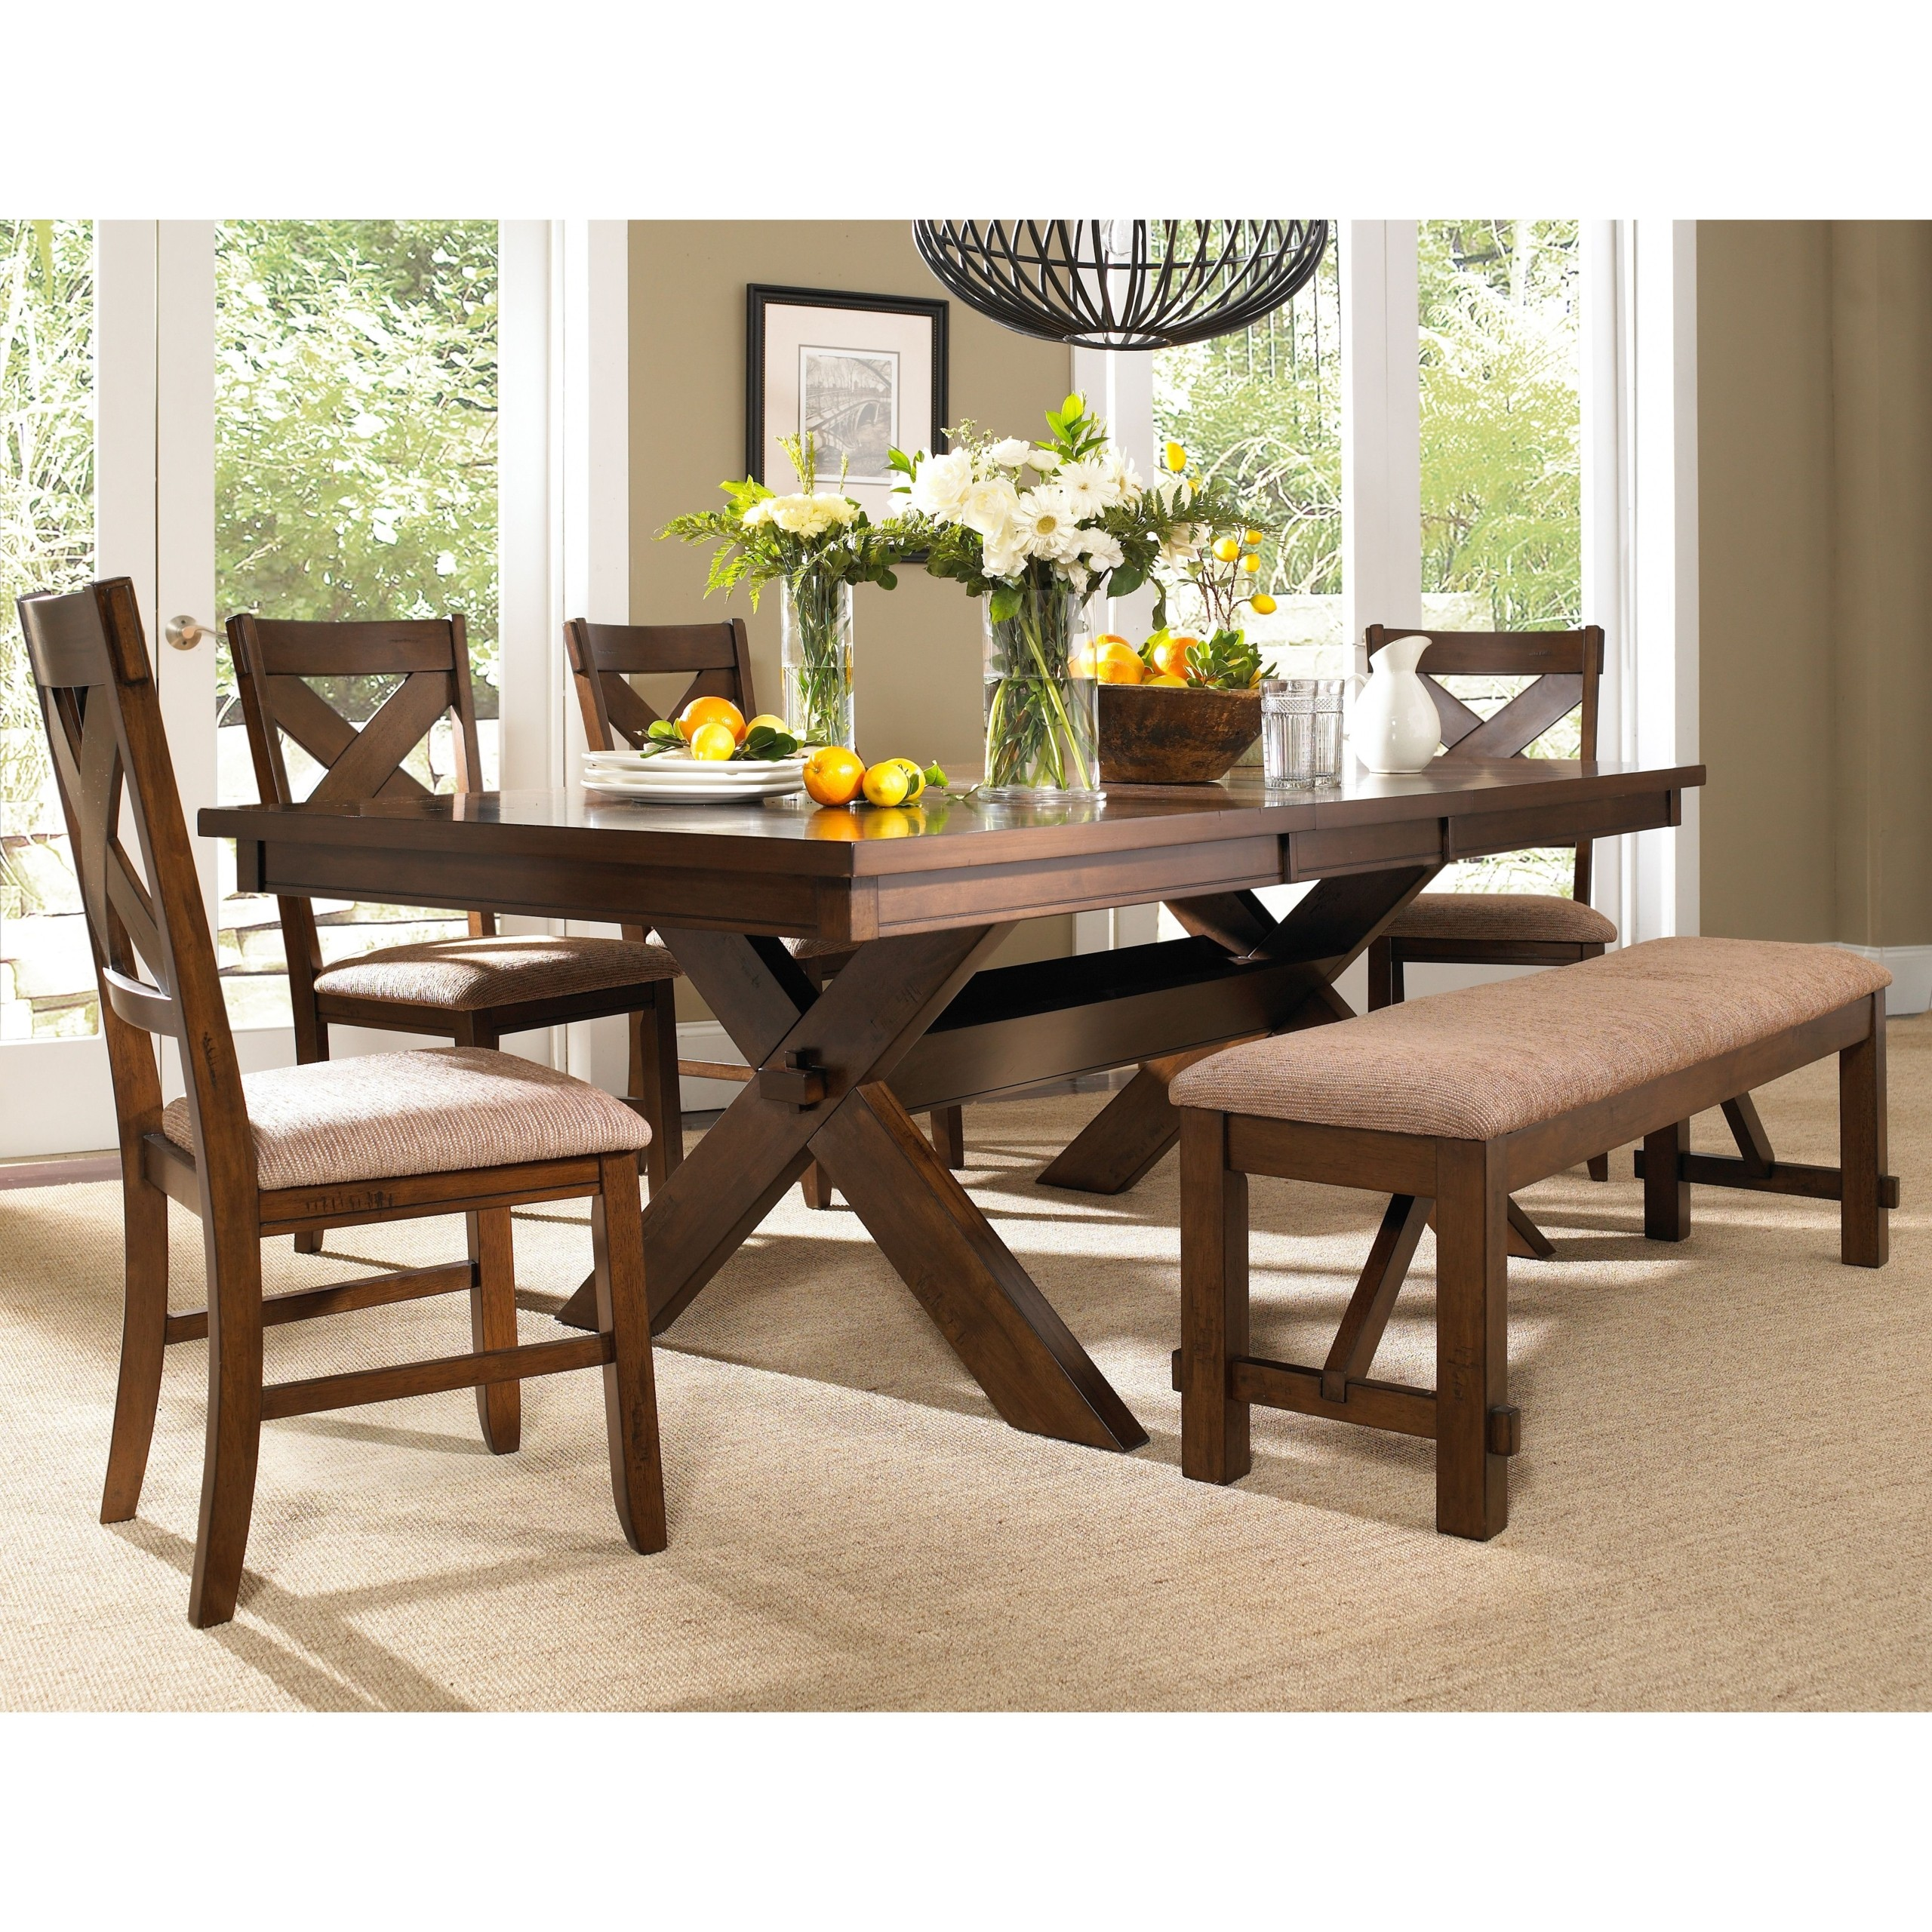 Dining Table With Chairs And Bench Ideas On Foter